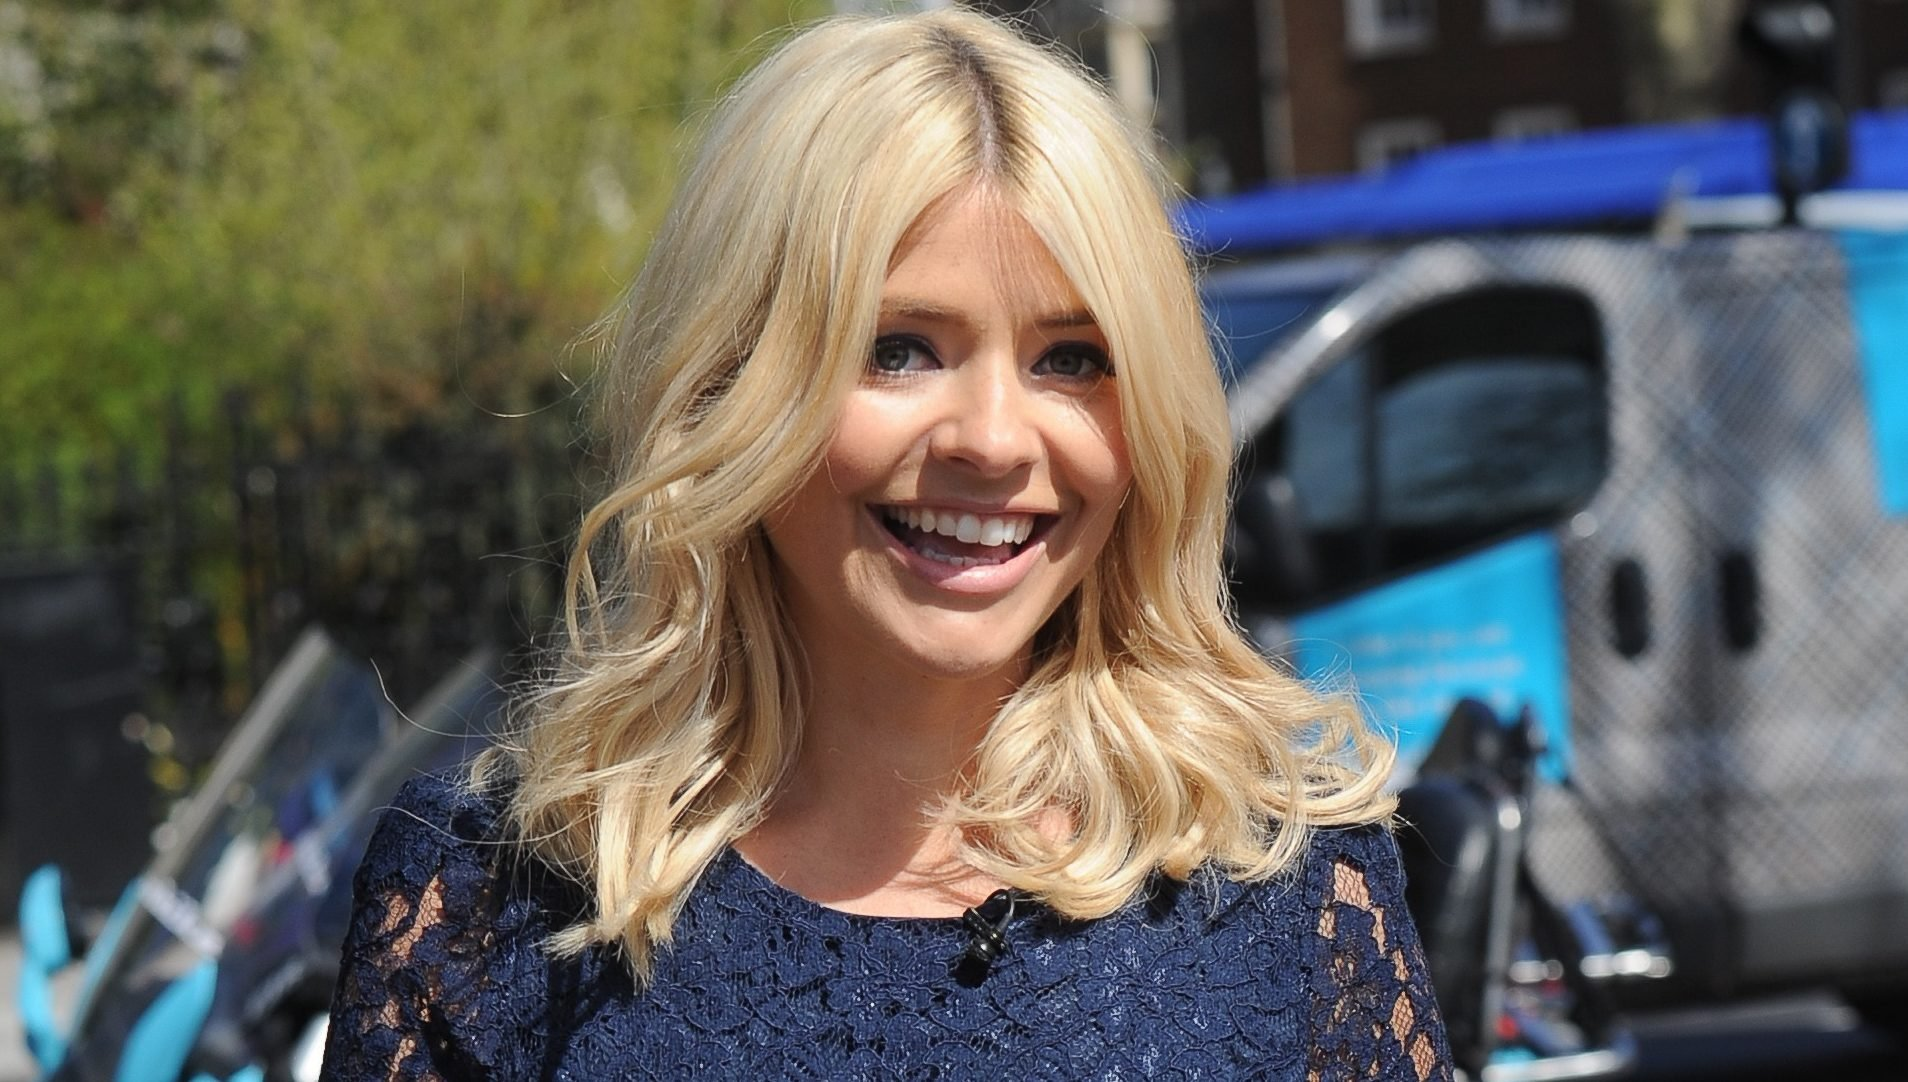 Holly Willoughby's sister shares adorable throwback of the presenter to mark her birthday